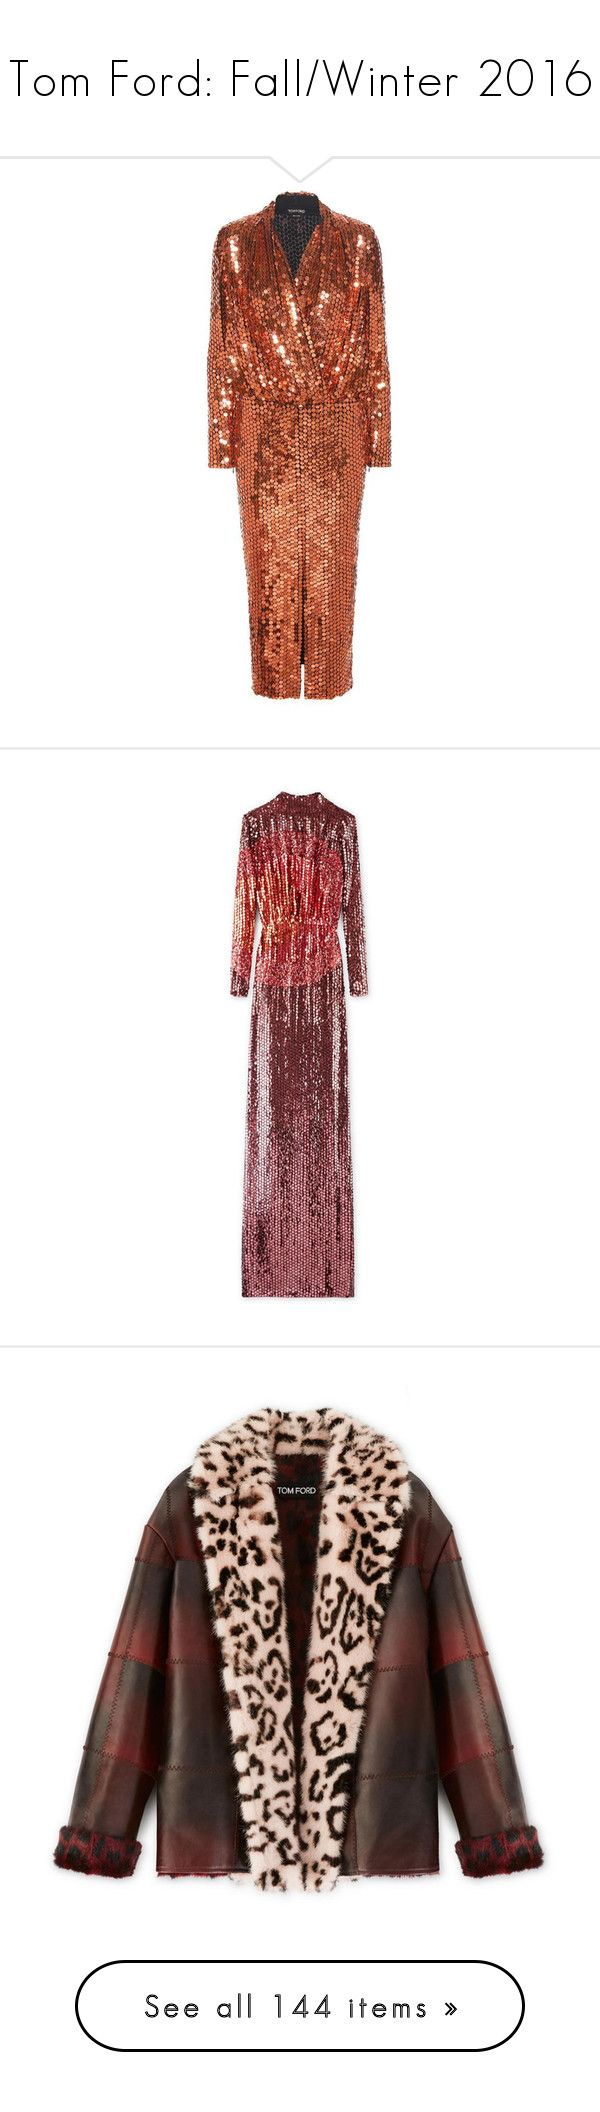 """""""Tom Ford: Fall/Winter 2016"""" by livnd ❤ liked on Polyvore featuring TOMFORD, fallwinter2016, livndfashion, livndtomford, dresses, orange, brown sequin dress, orange sequin dress, tom ford dresses and sequin dresses"""